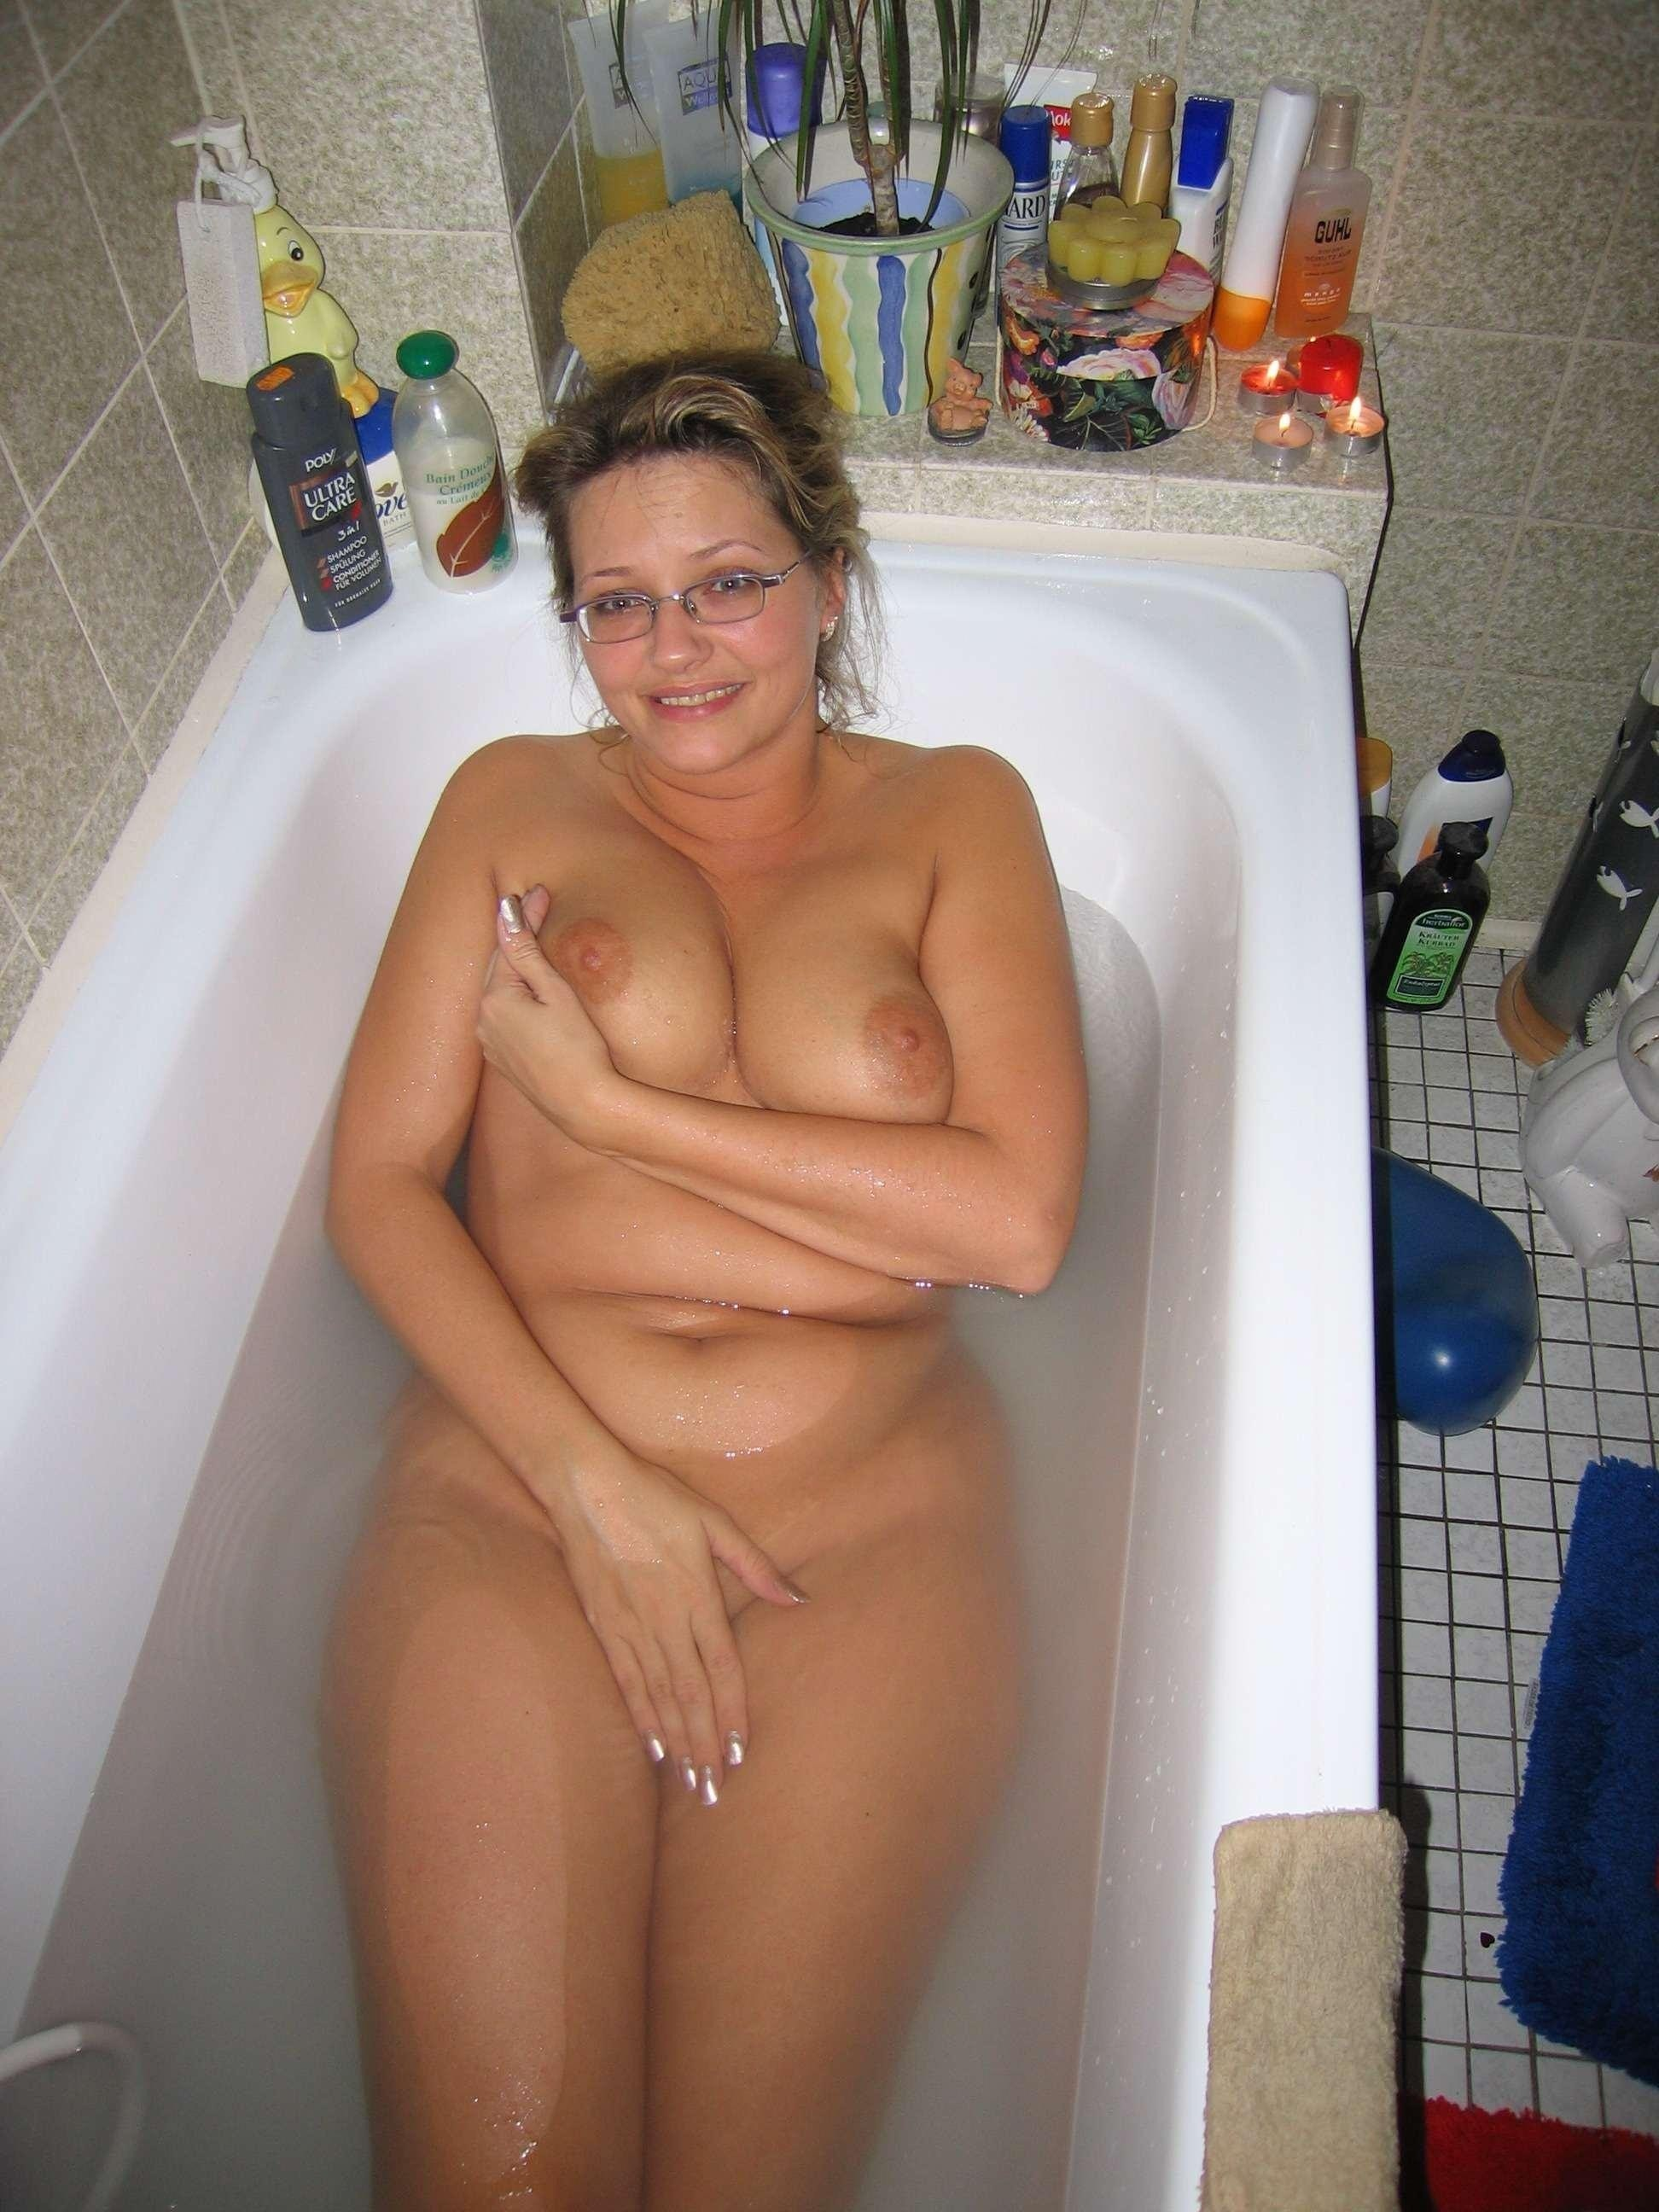 Husband clicking pics of wife naked bathing very hot